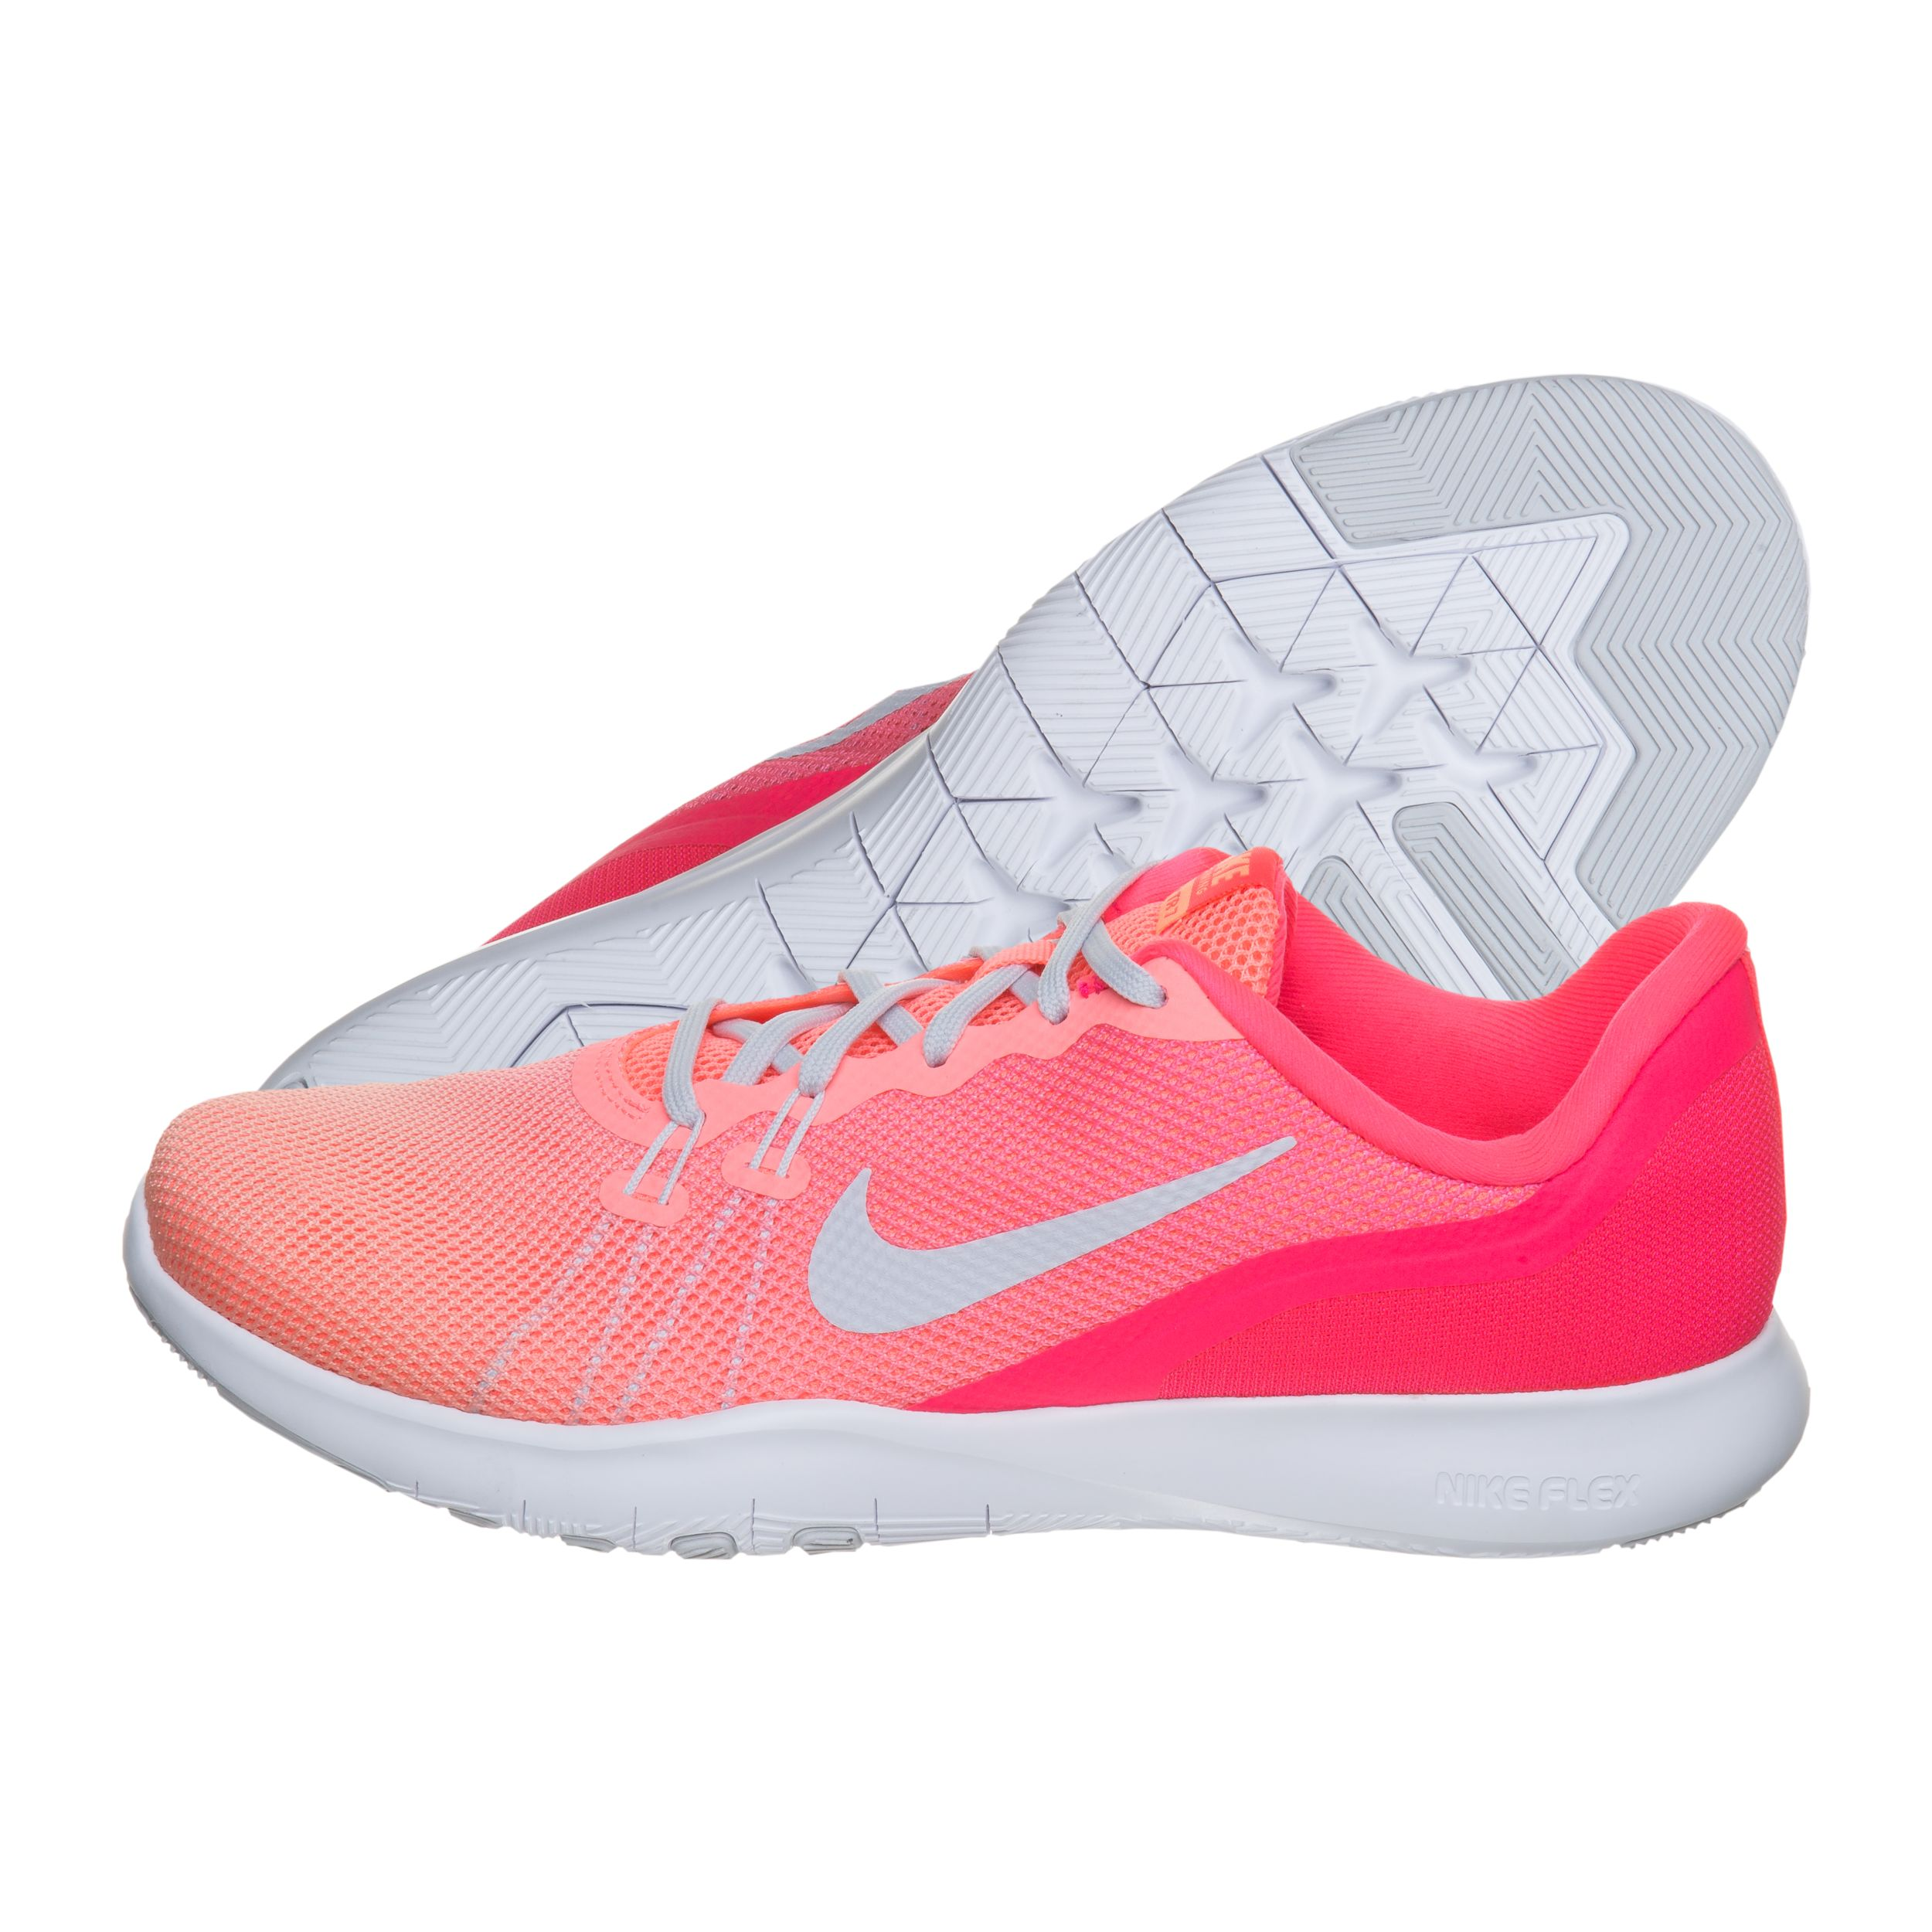 pretty nice cc287 46ab2 ... where to buy nike wmns free trainer 7 fitnessschuh rosa rosa 57e3f  54af7 ...